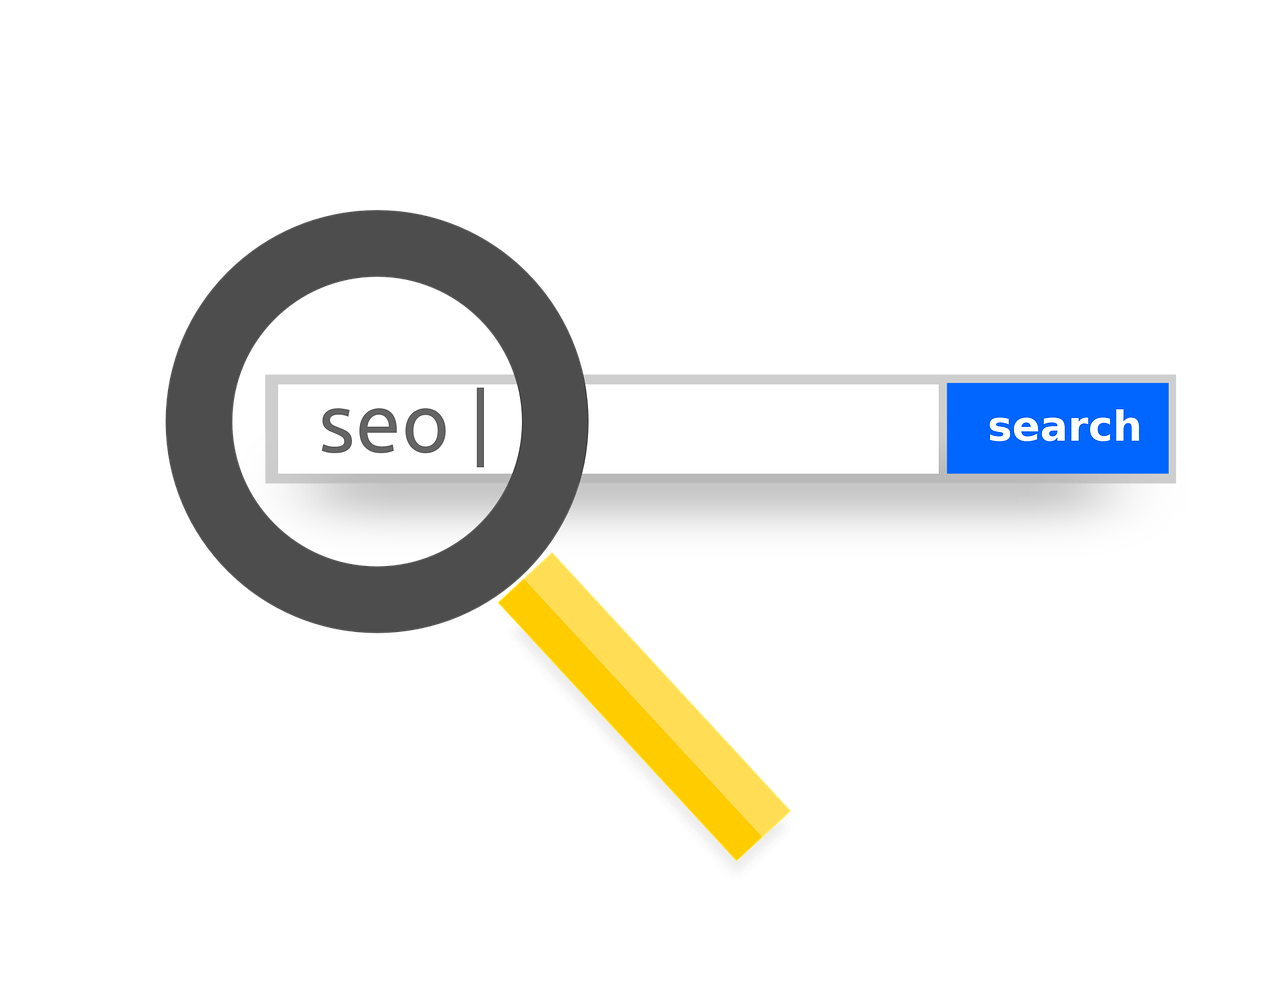 5 keyword research tips for advertisers and SEOs